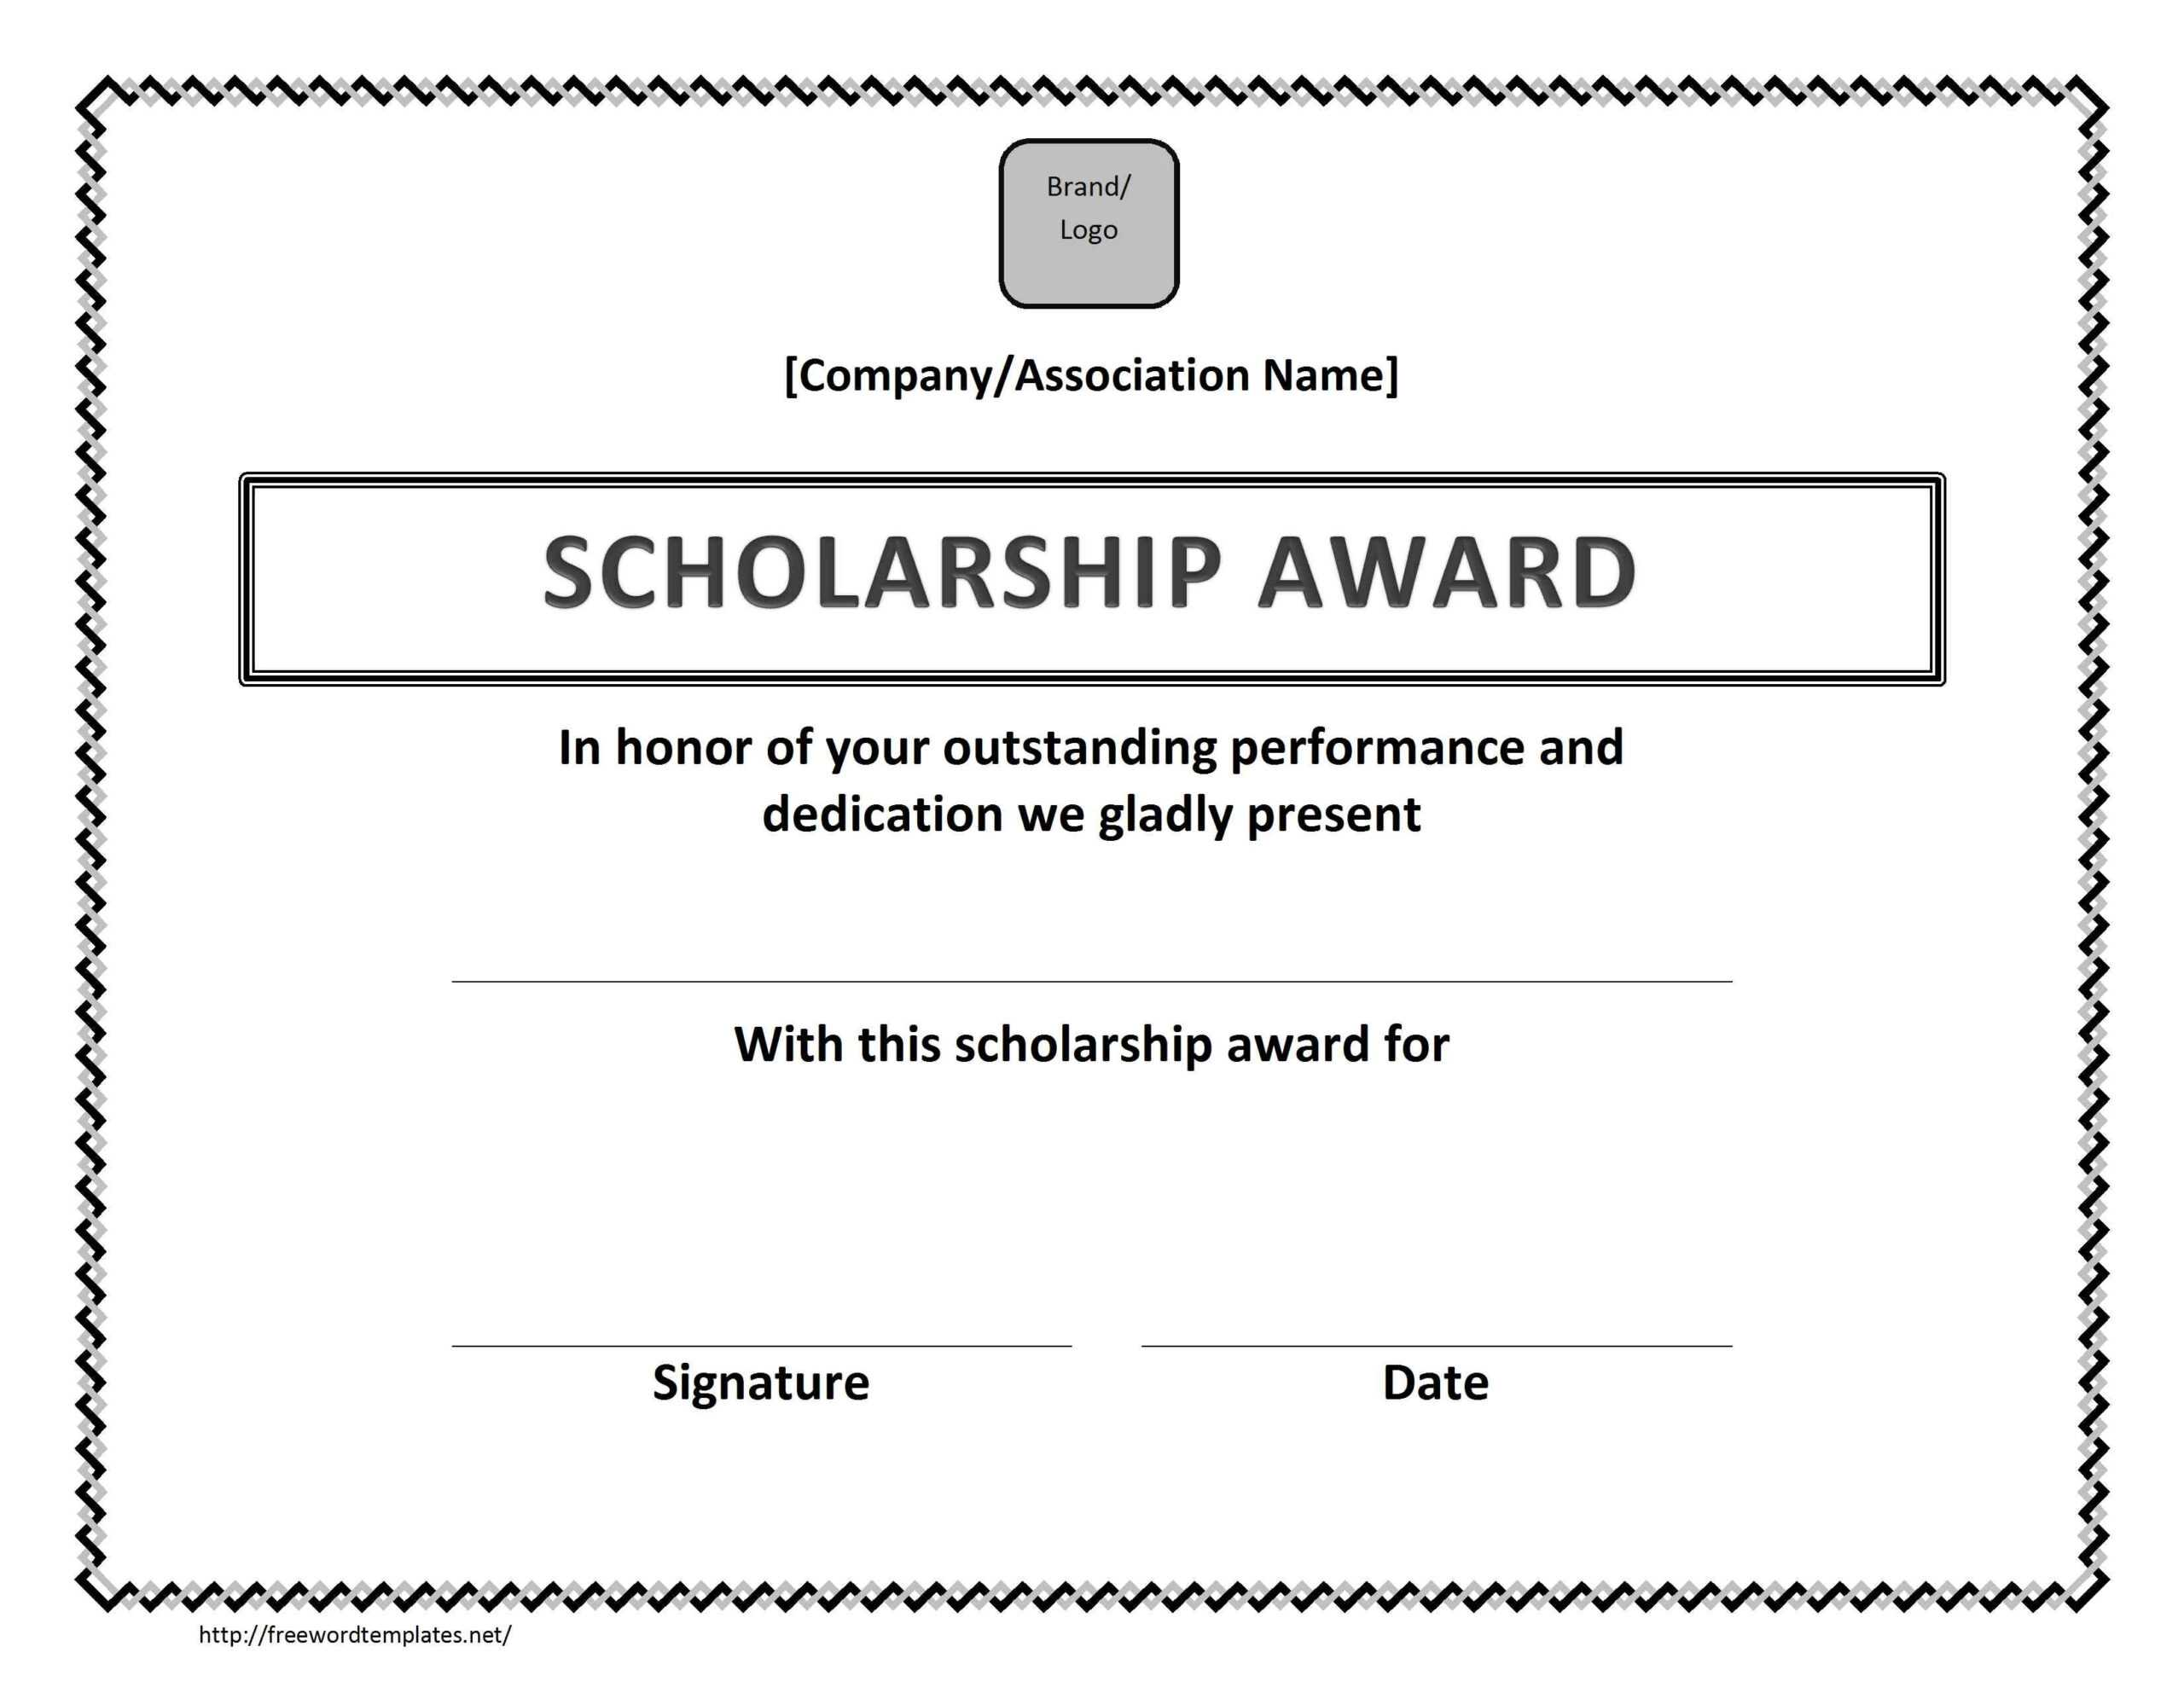 Scholarship Award Certificate Template Pertaining To Scholarship Certificate Template Word